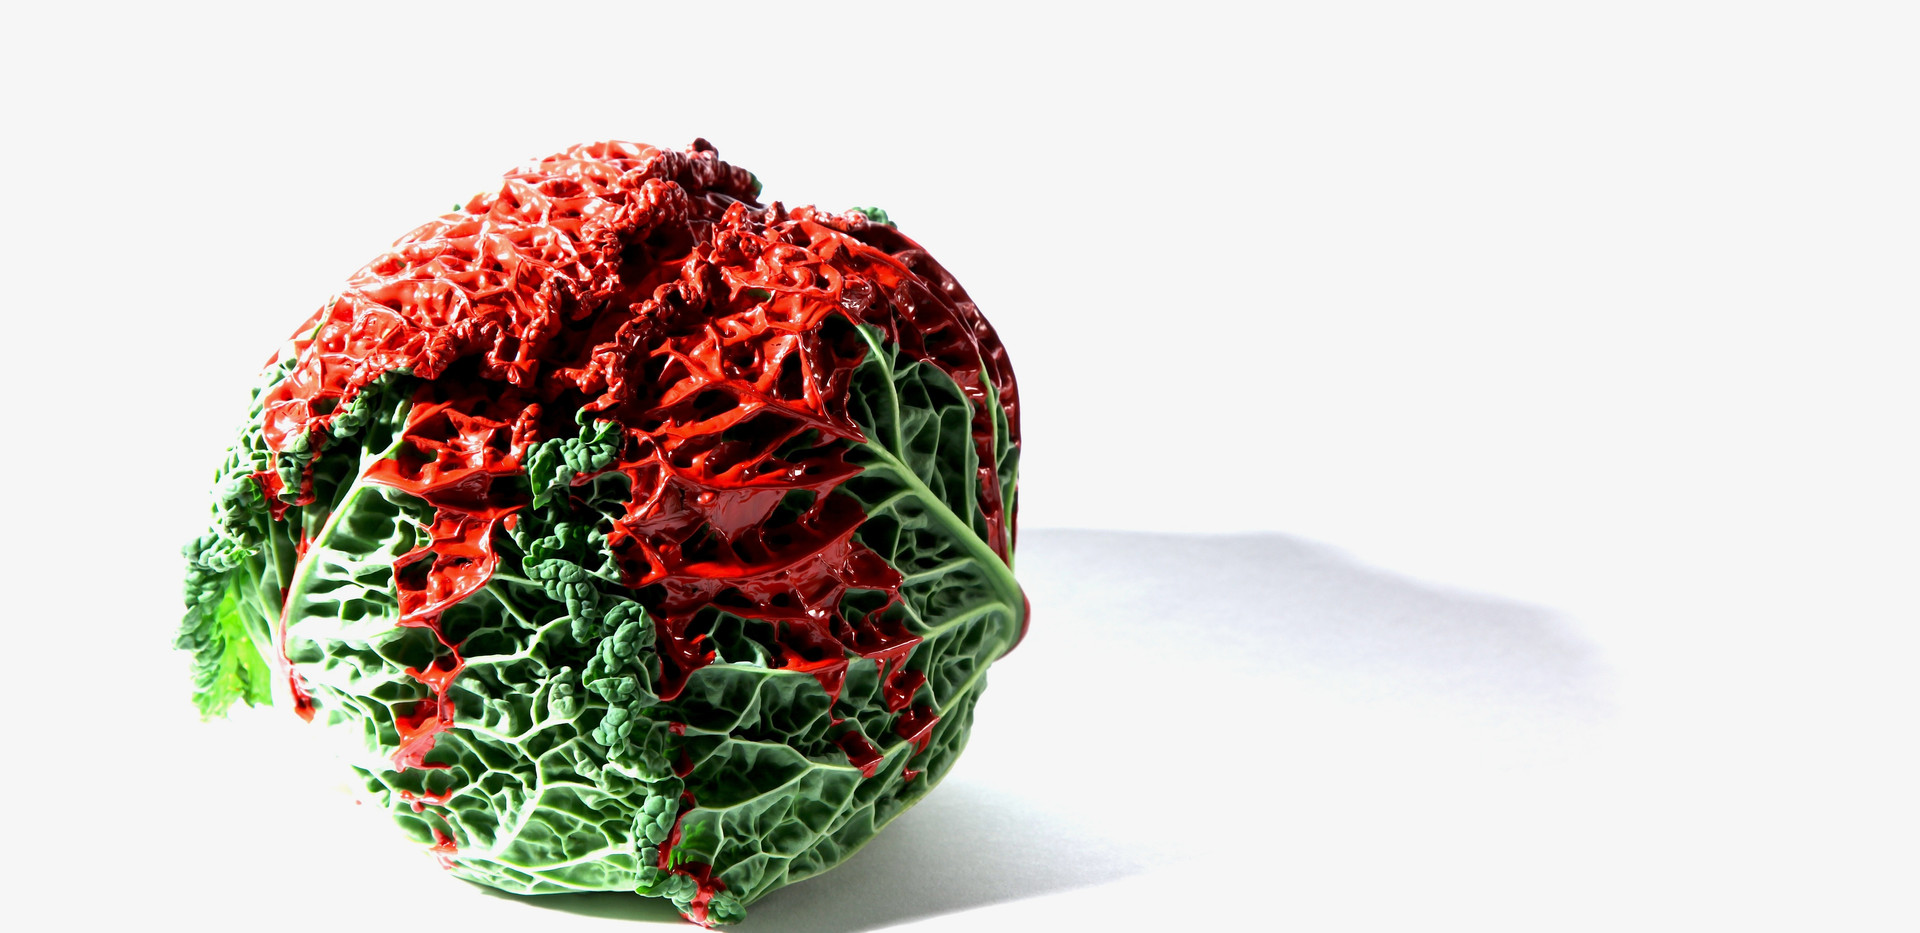 'Cabbage with red paint - Alive' (2017)